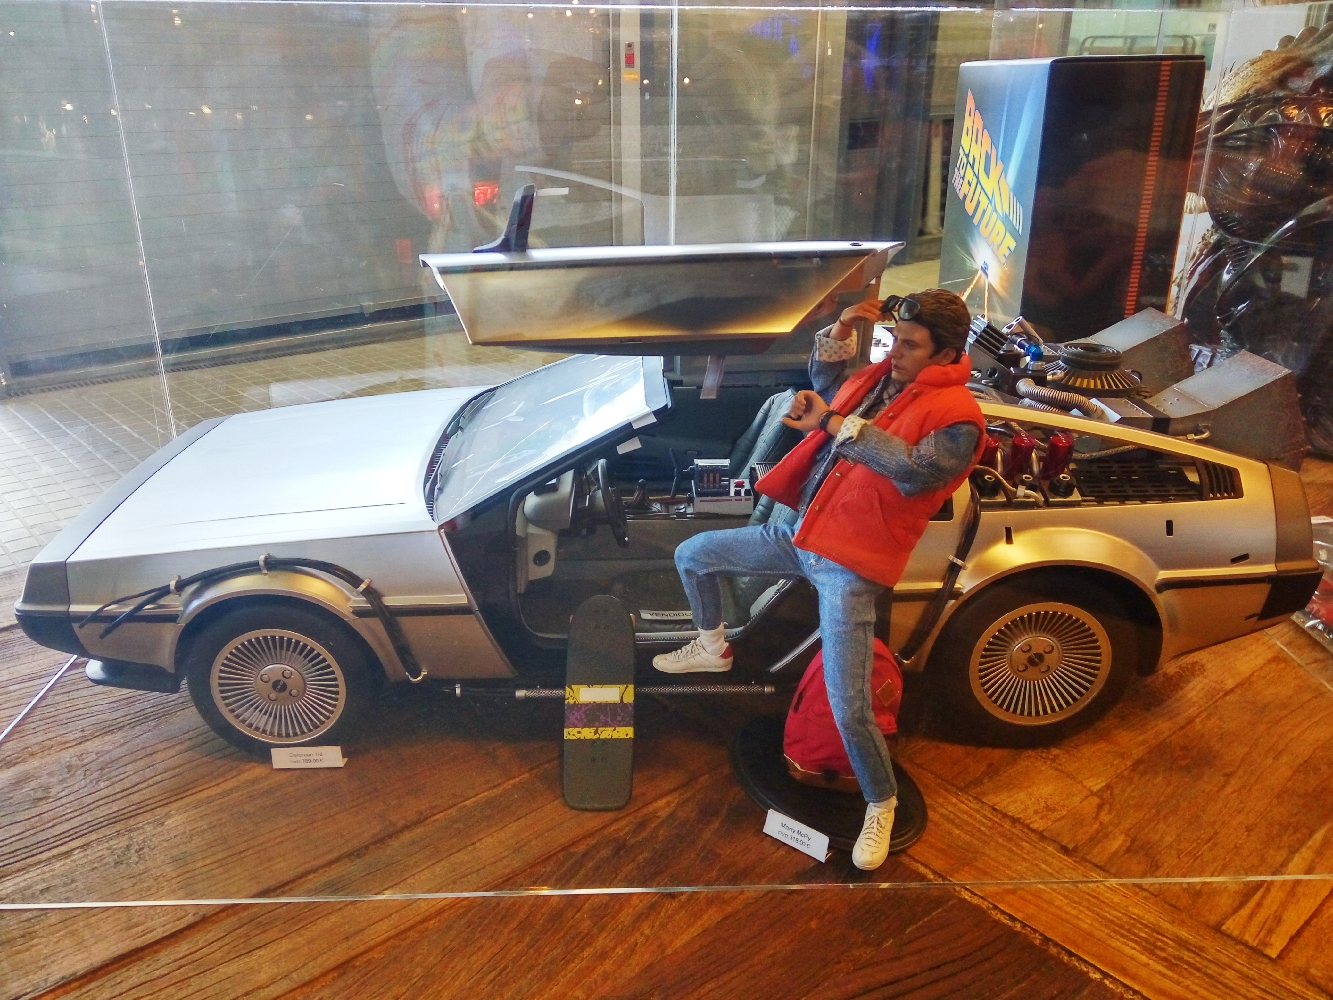 Back to the future Delorian 1/6th scale